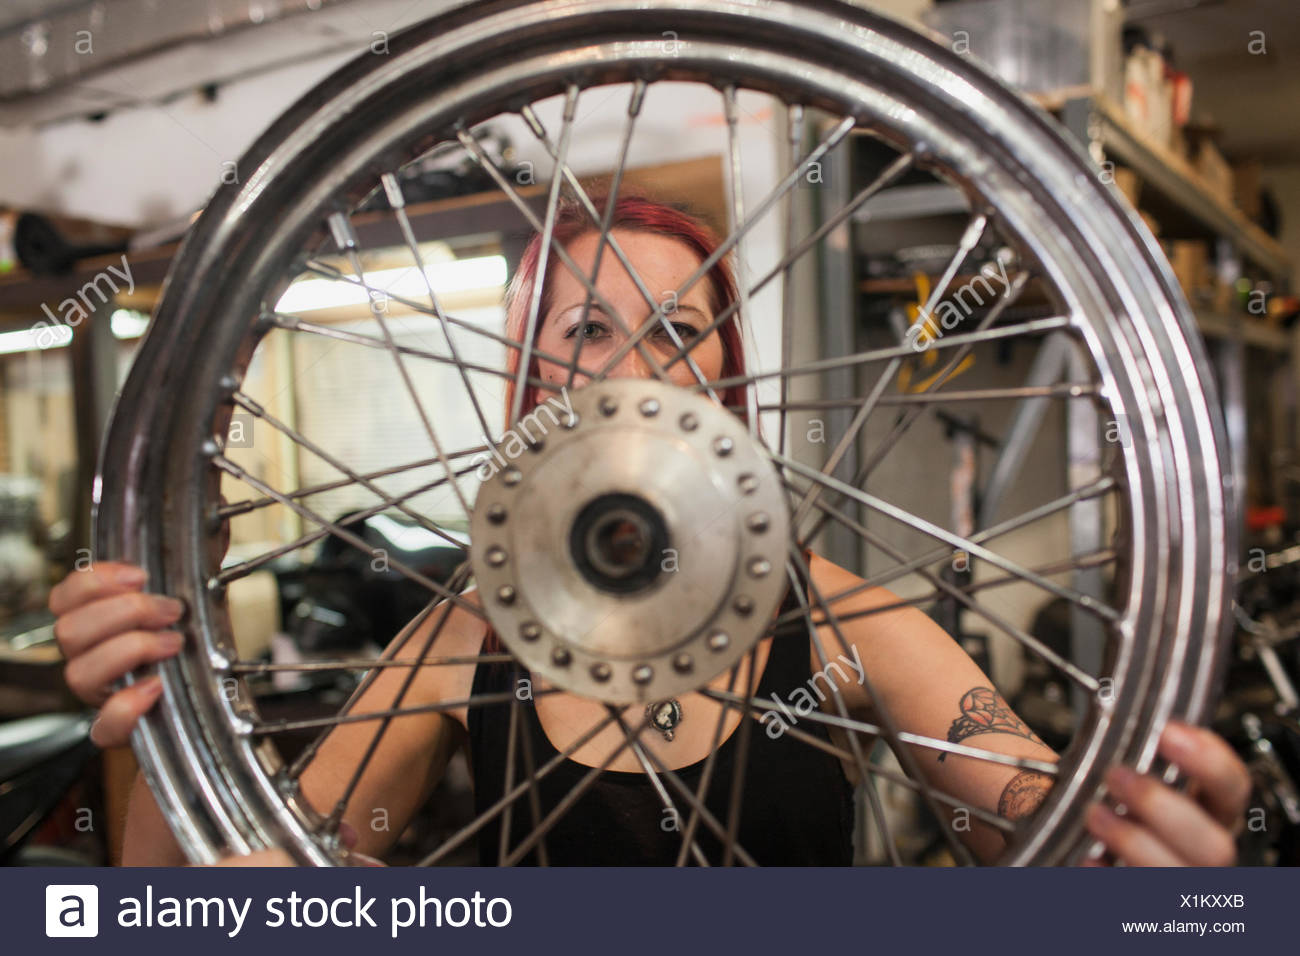 A young woman holding a wheel. - Stock Image